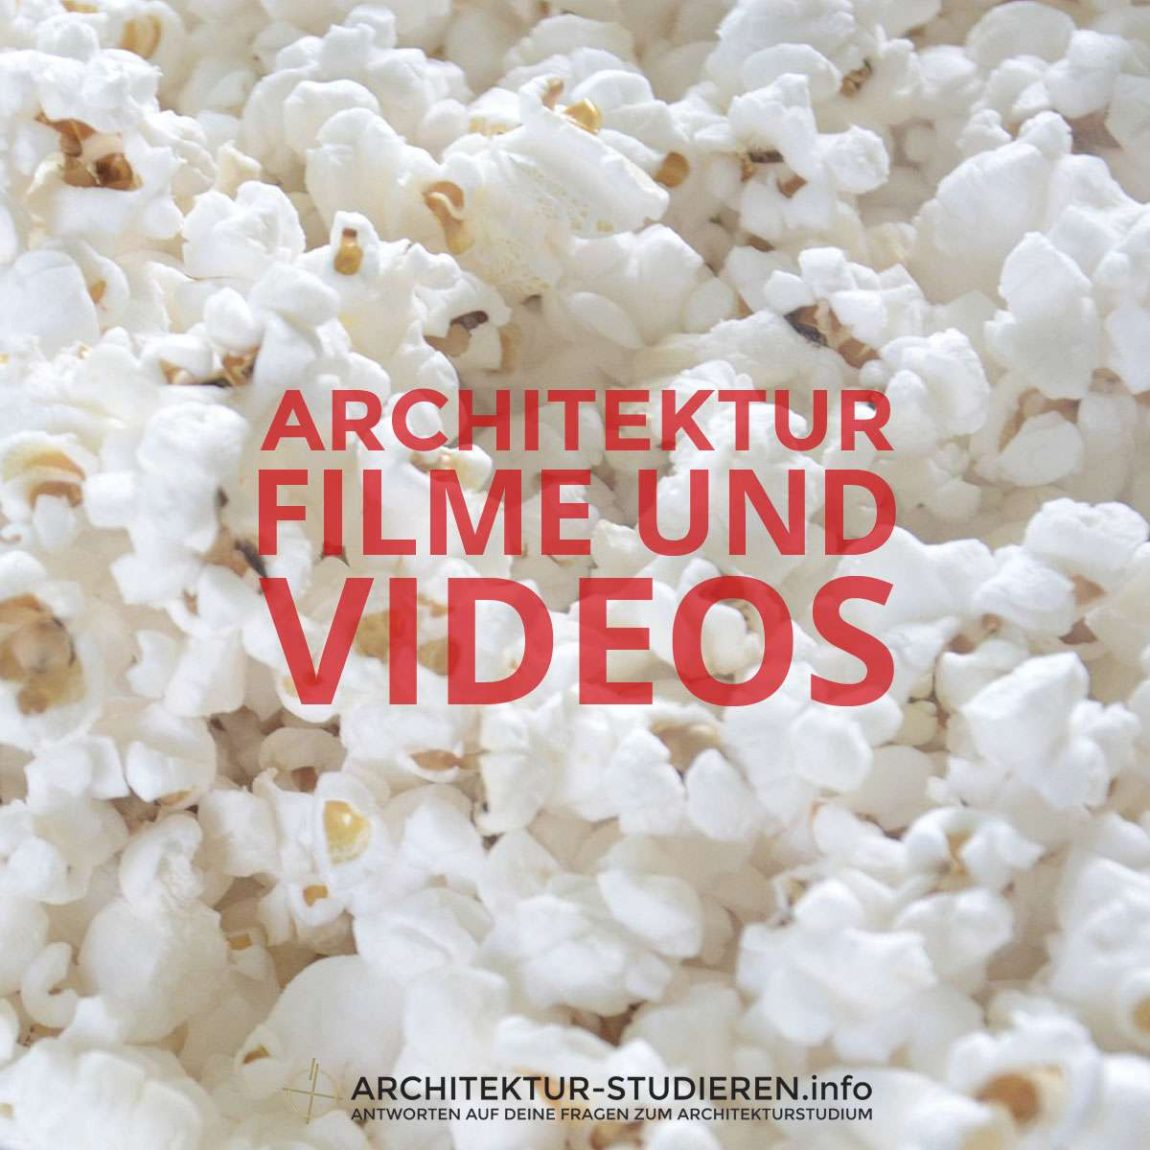 Architekturfilme und -videos | © Architektur-studieren.info